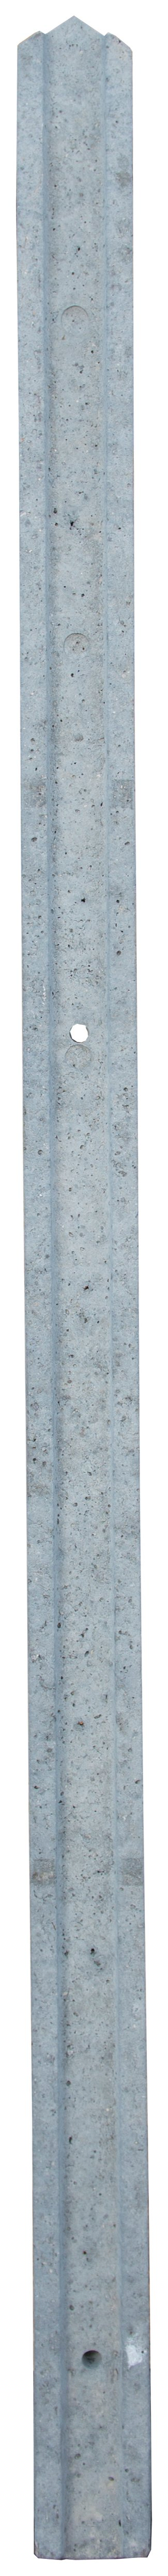 Forest Concrete Fence Post - Pack of 4. lowest price